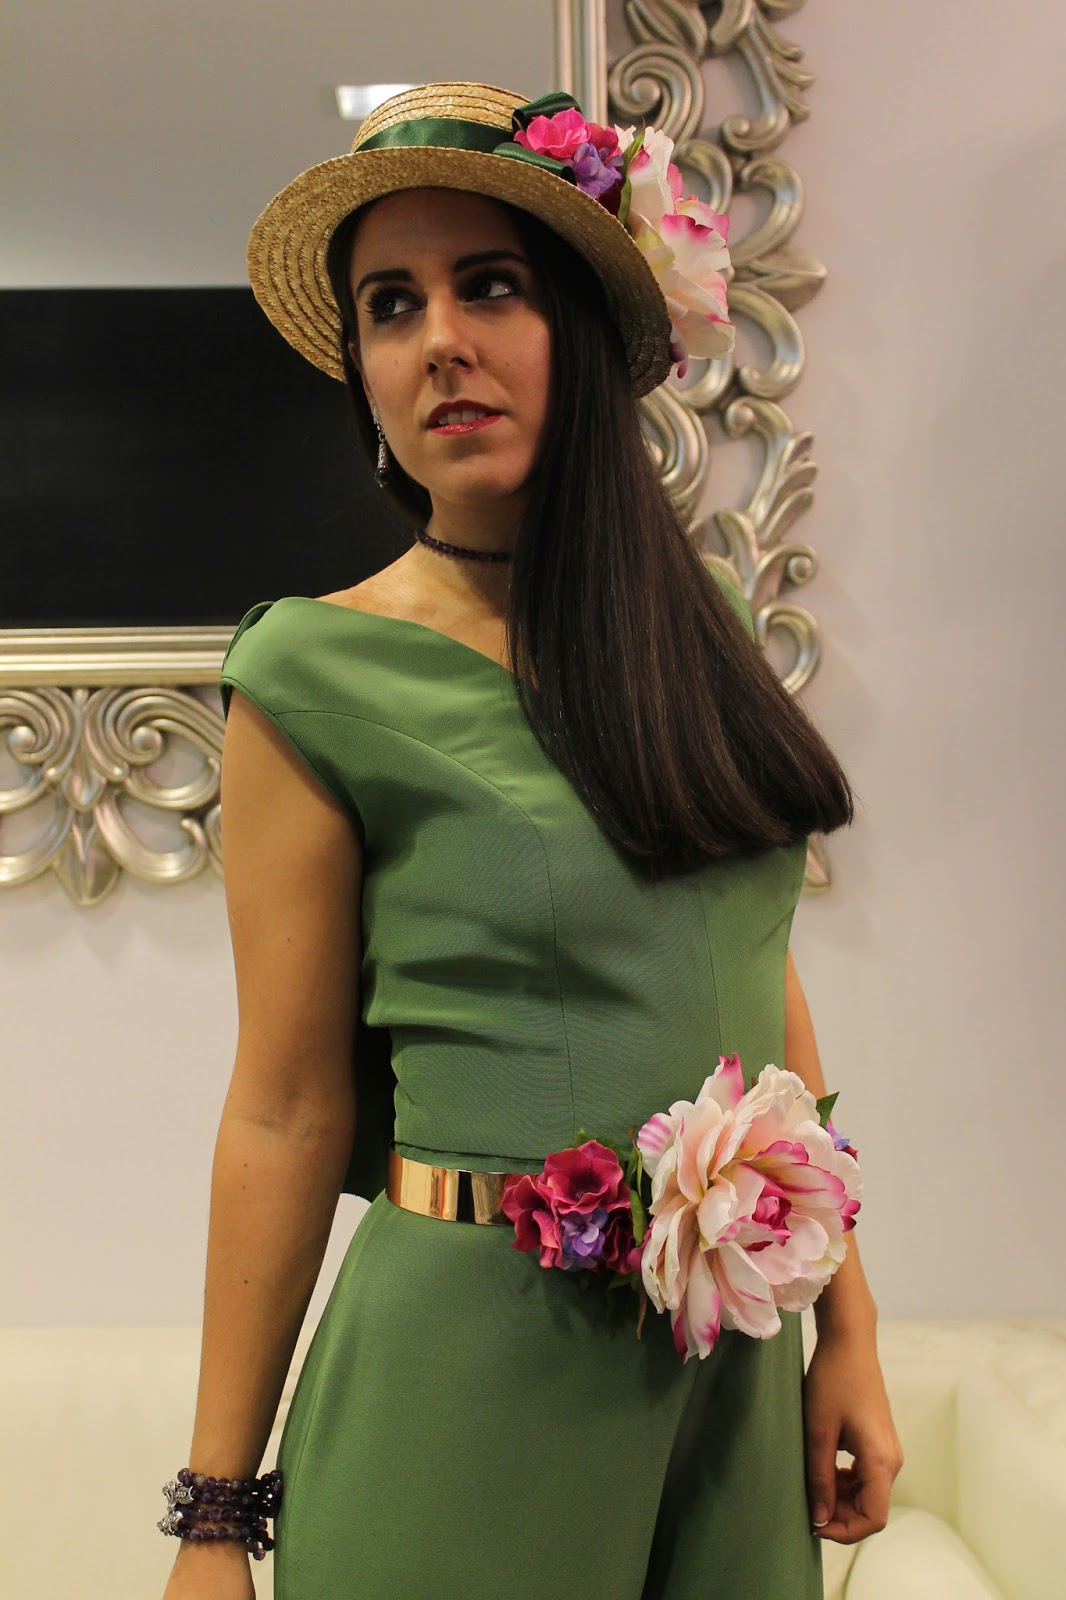 wedding-boda-invitada-mono-canotier-modelo-blogger-bloggerpost-fashion